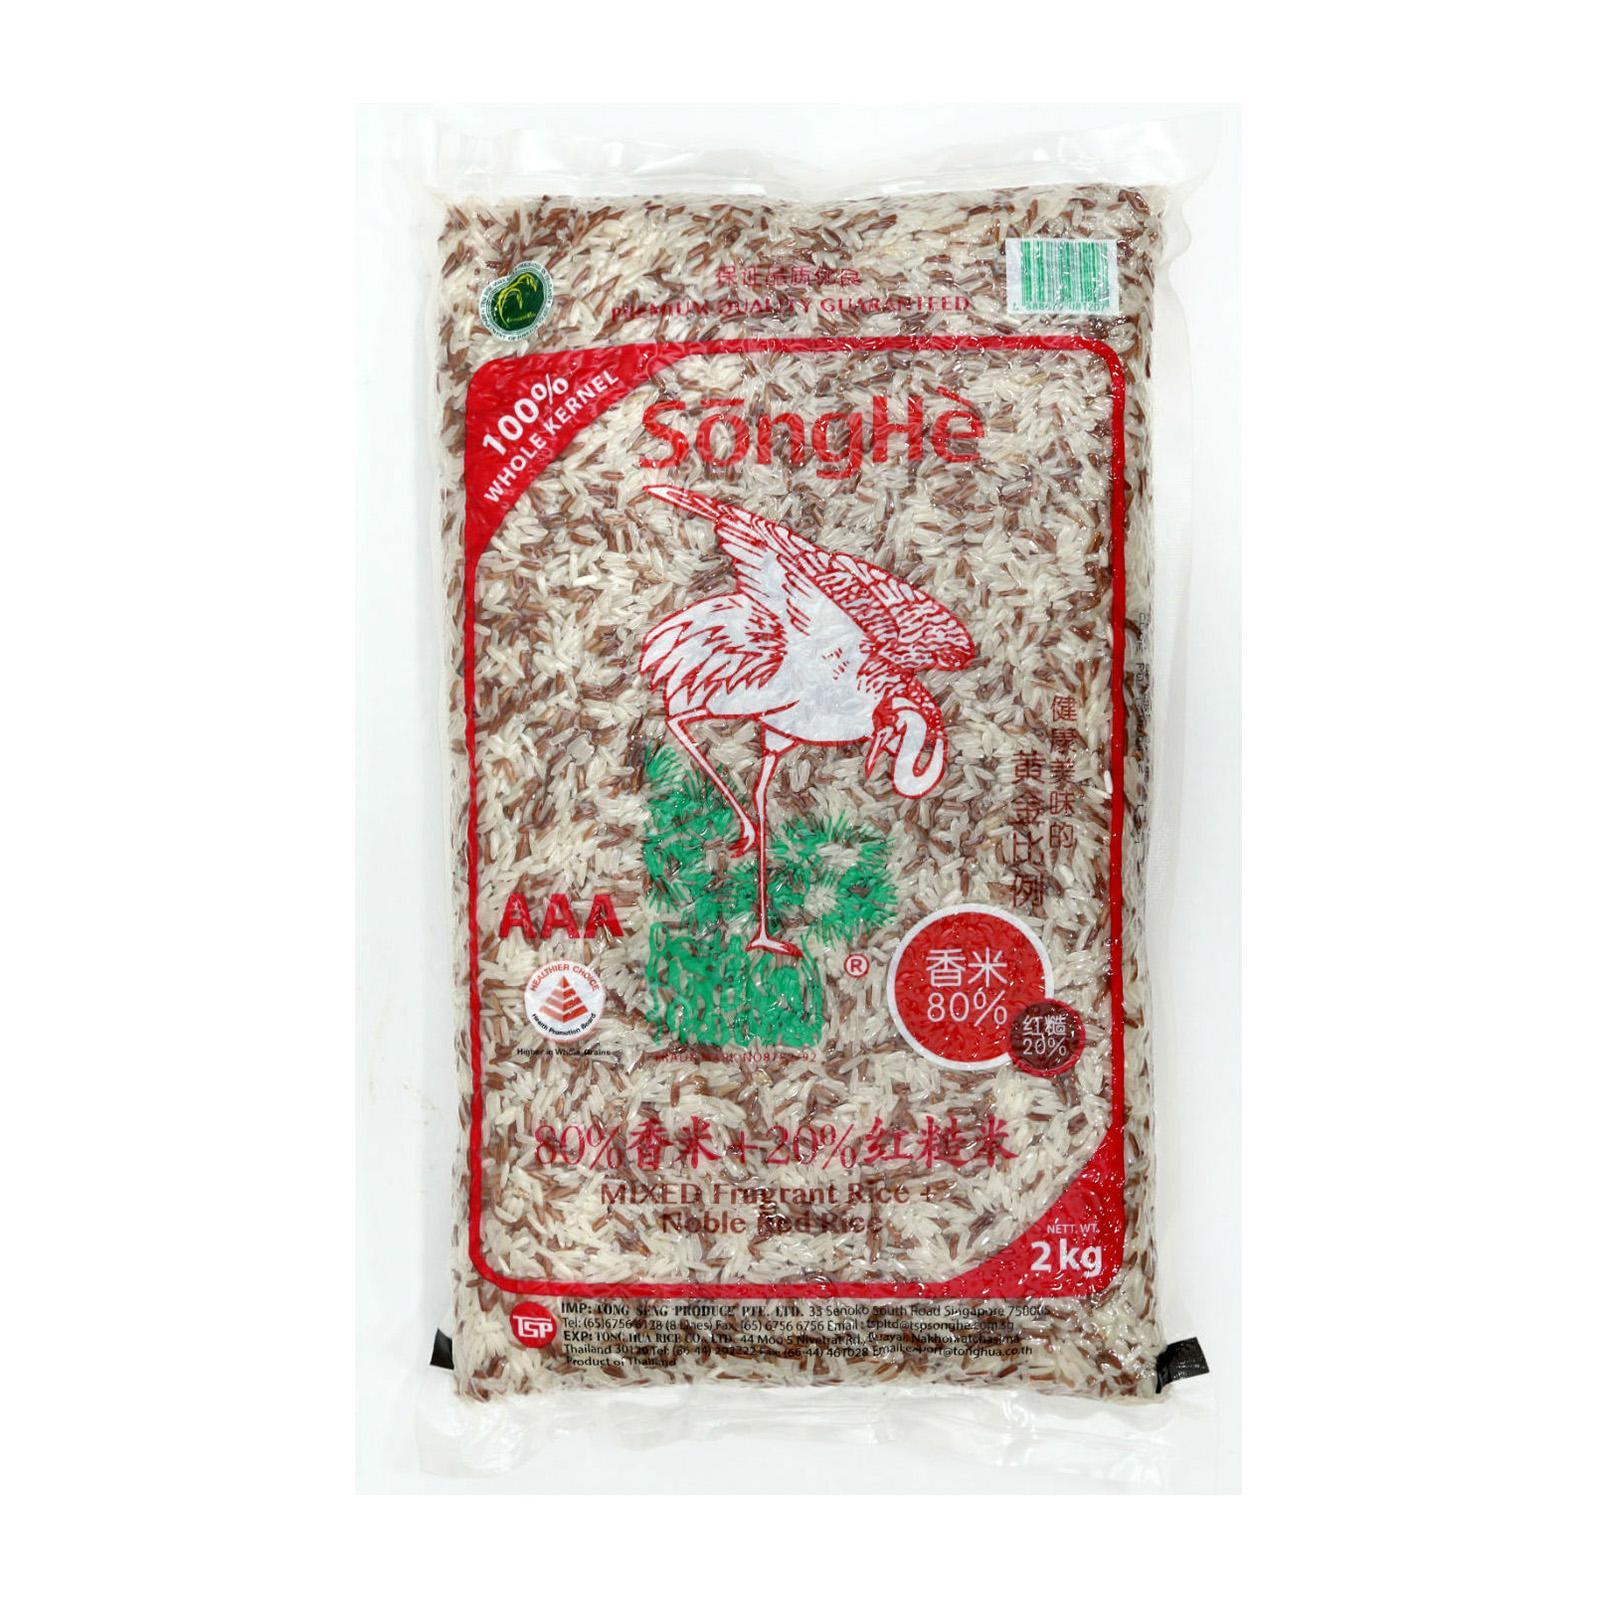 SongHe Mixed Fragrant Rice + Noble Red Rice 2Kg